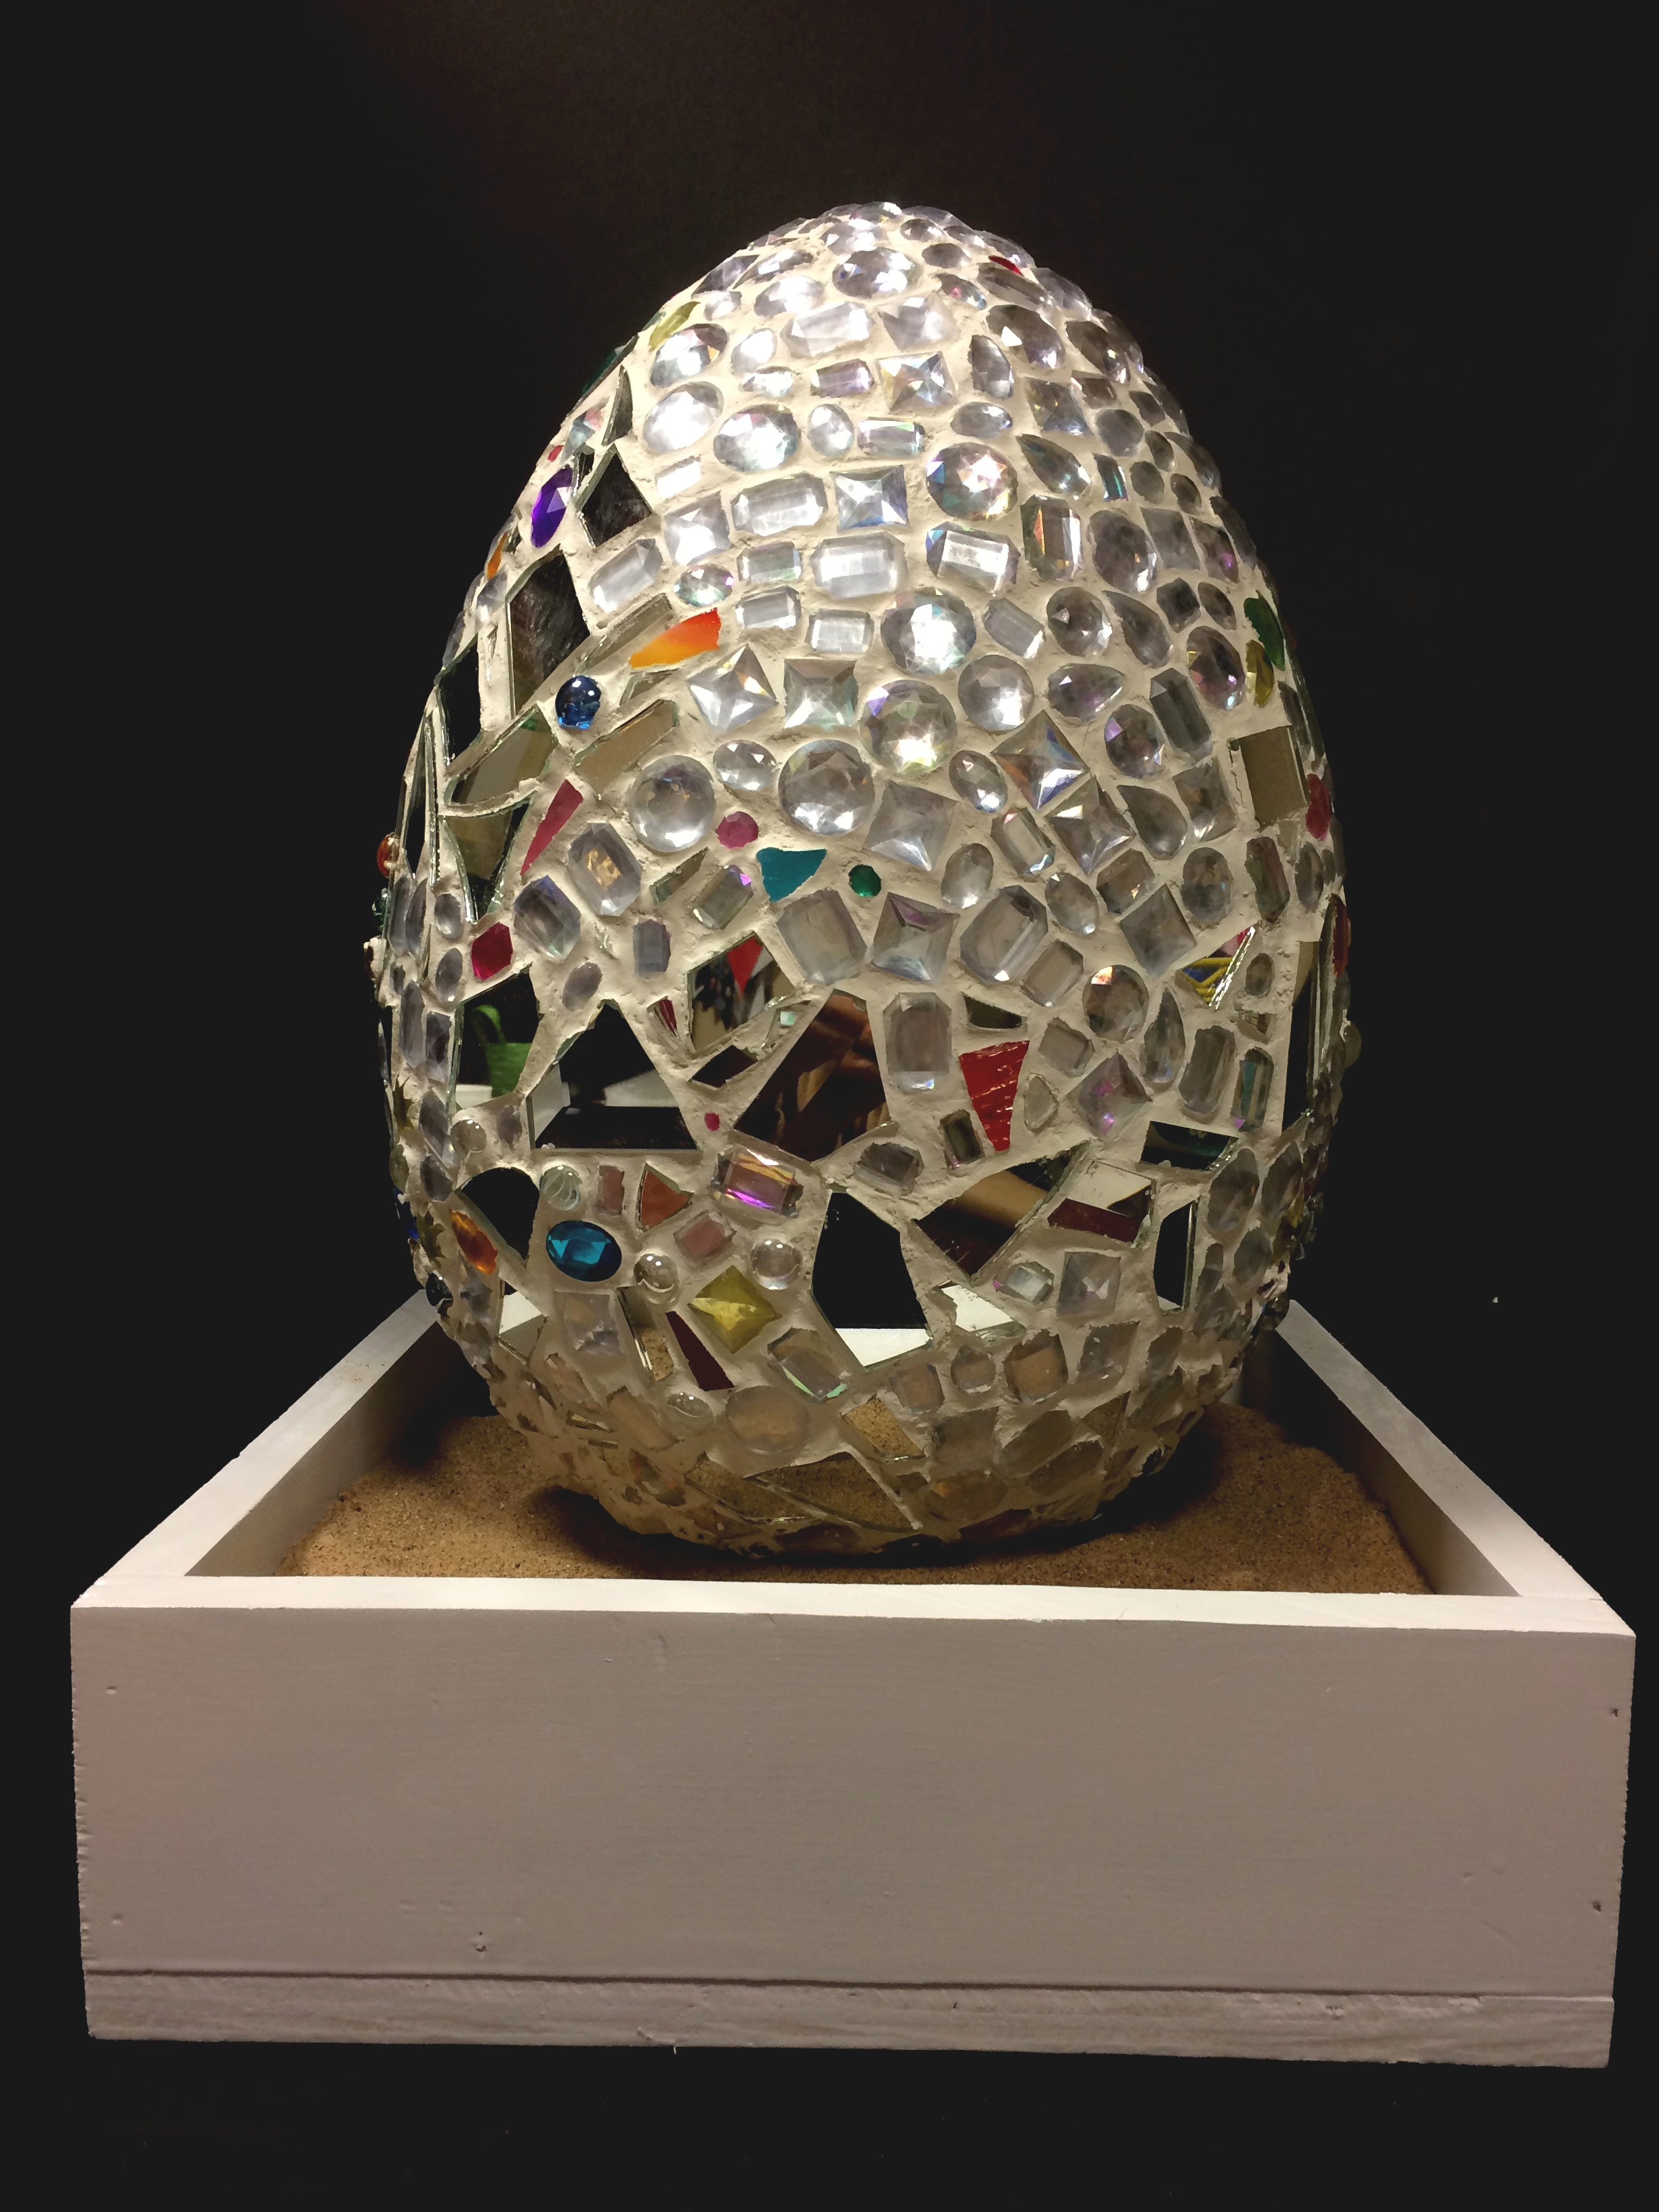 A large grey and colorful mosaic egg